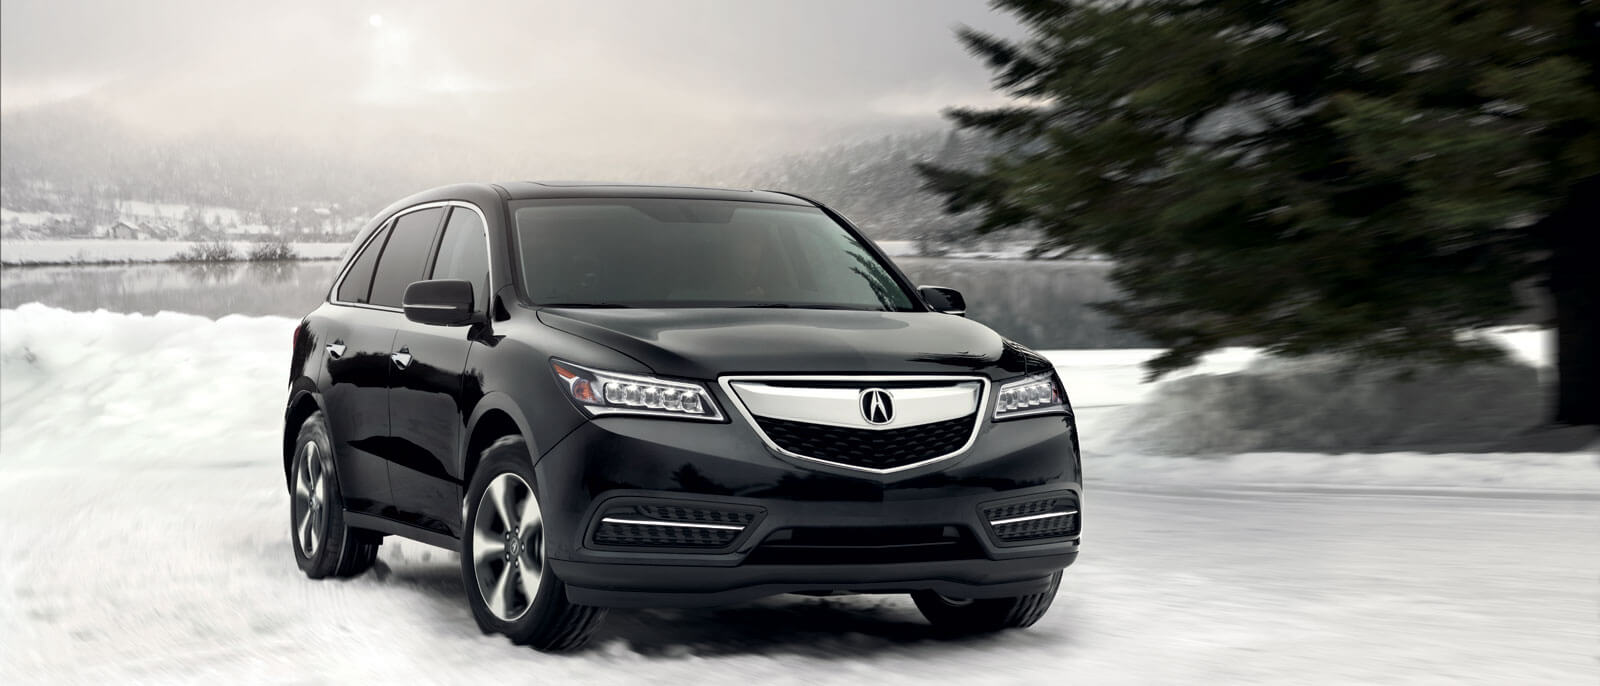 2016 Acura MDX main view